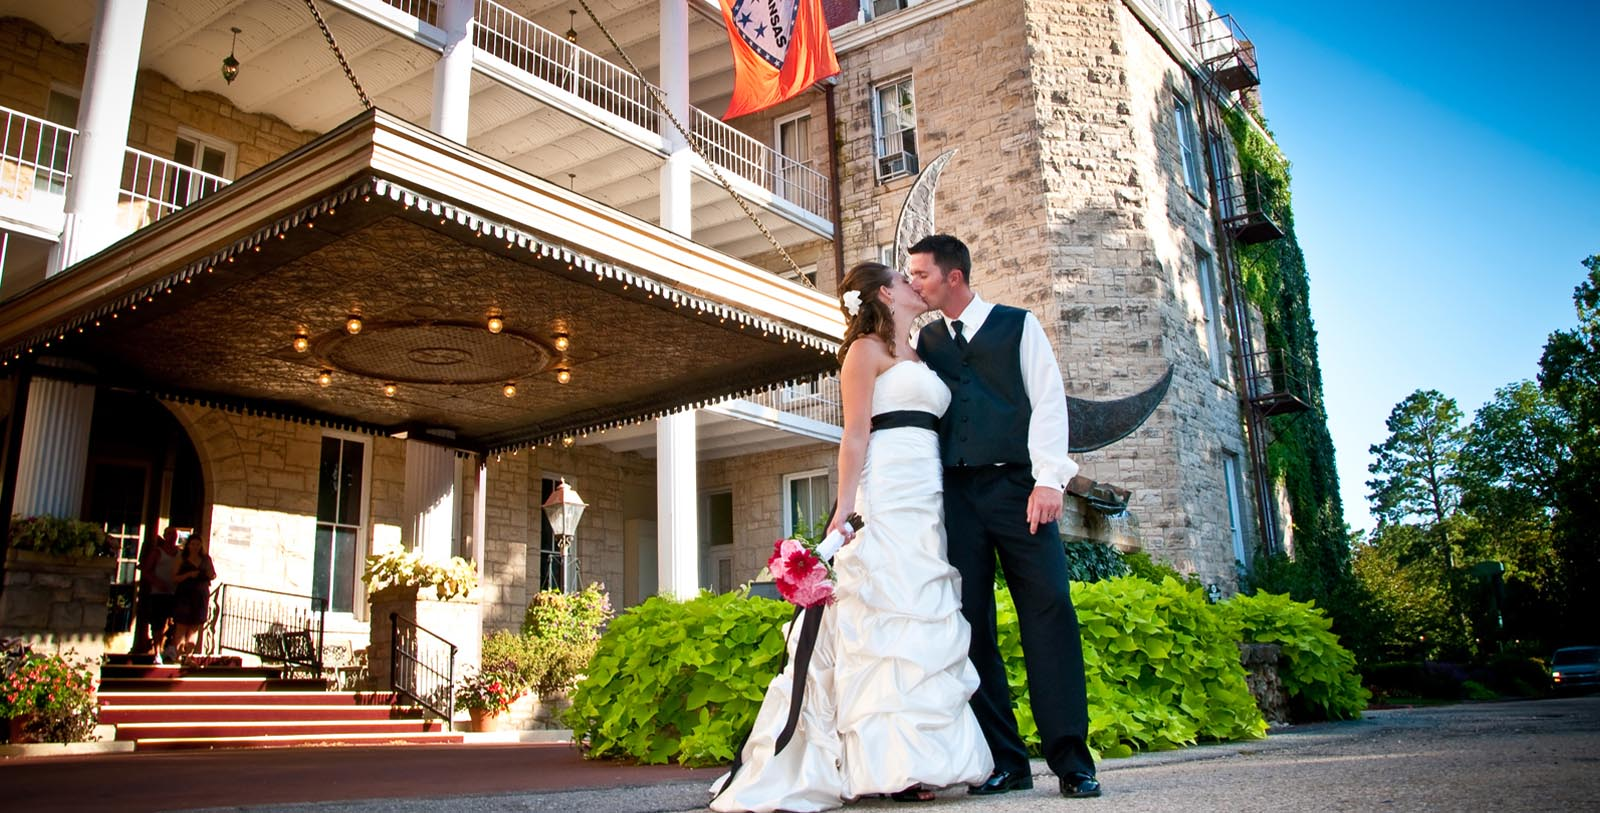 Image of Wedding Couple Outside 1886 Crescent Hotel & Spa, Member of Historic Hotels of America, in Eureka Springs, Arkansas, Special Occasions